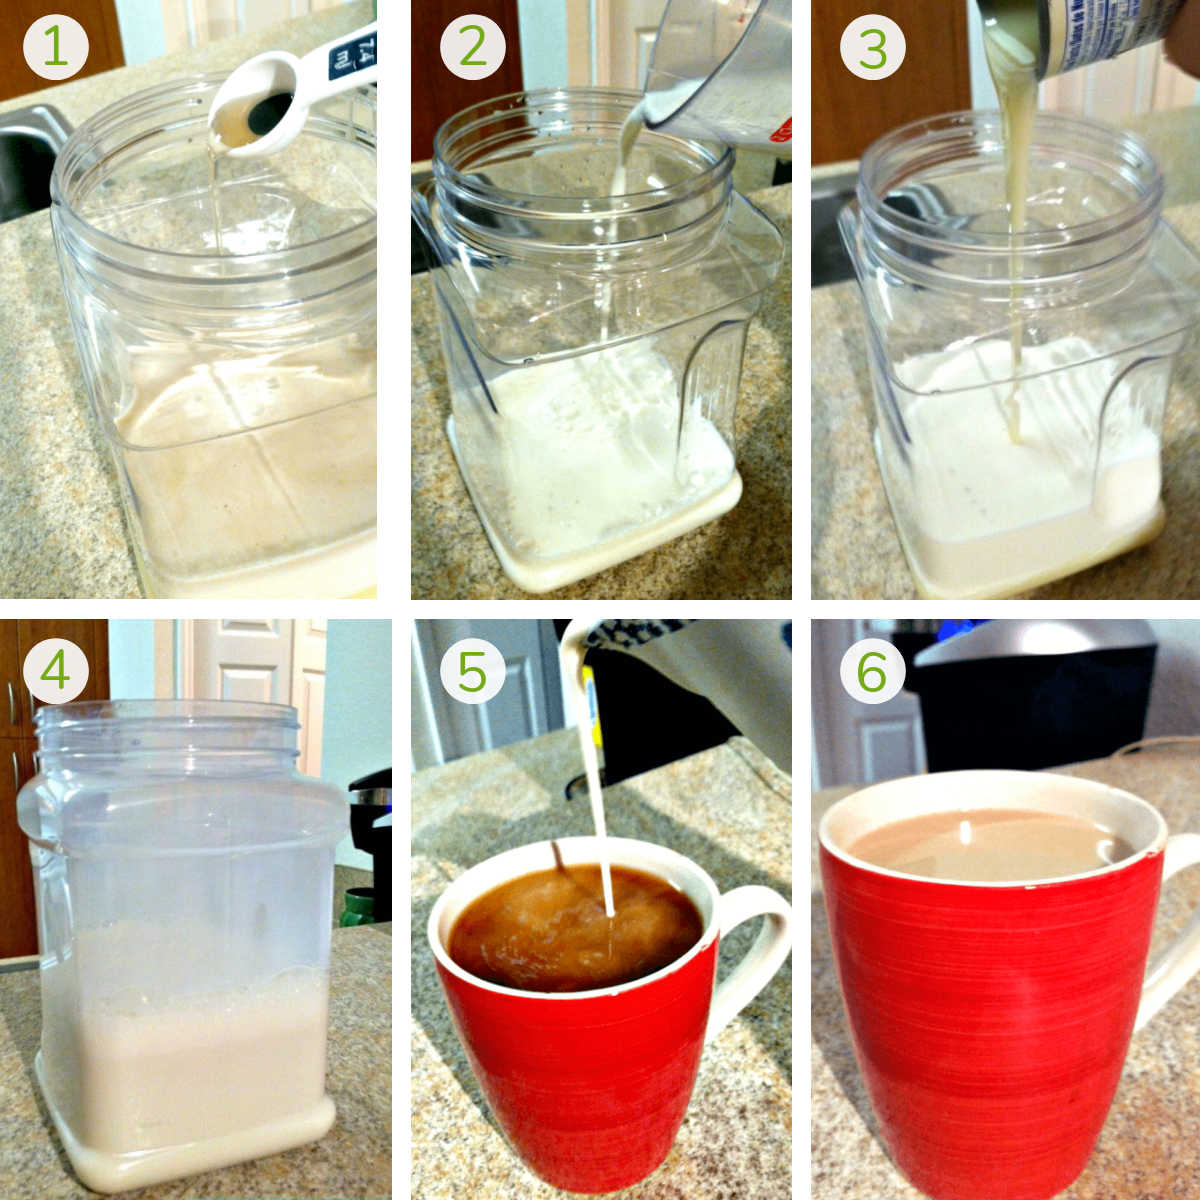 six process shots showing how to make the homemade caramel coffee creamer and pour it into a cup of coffee.